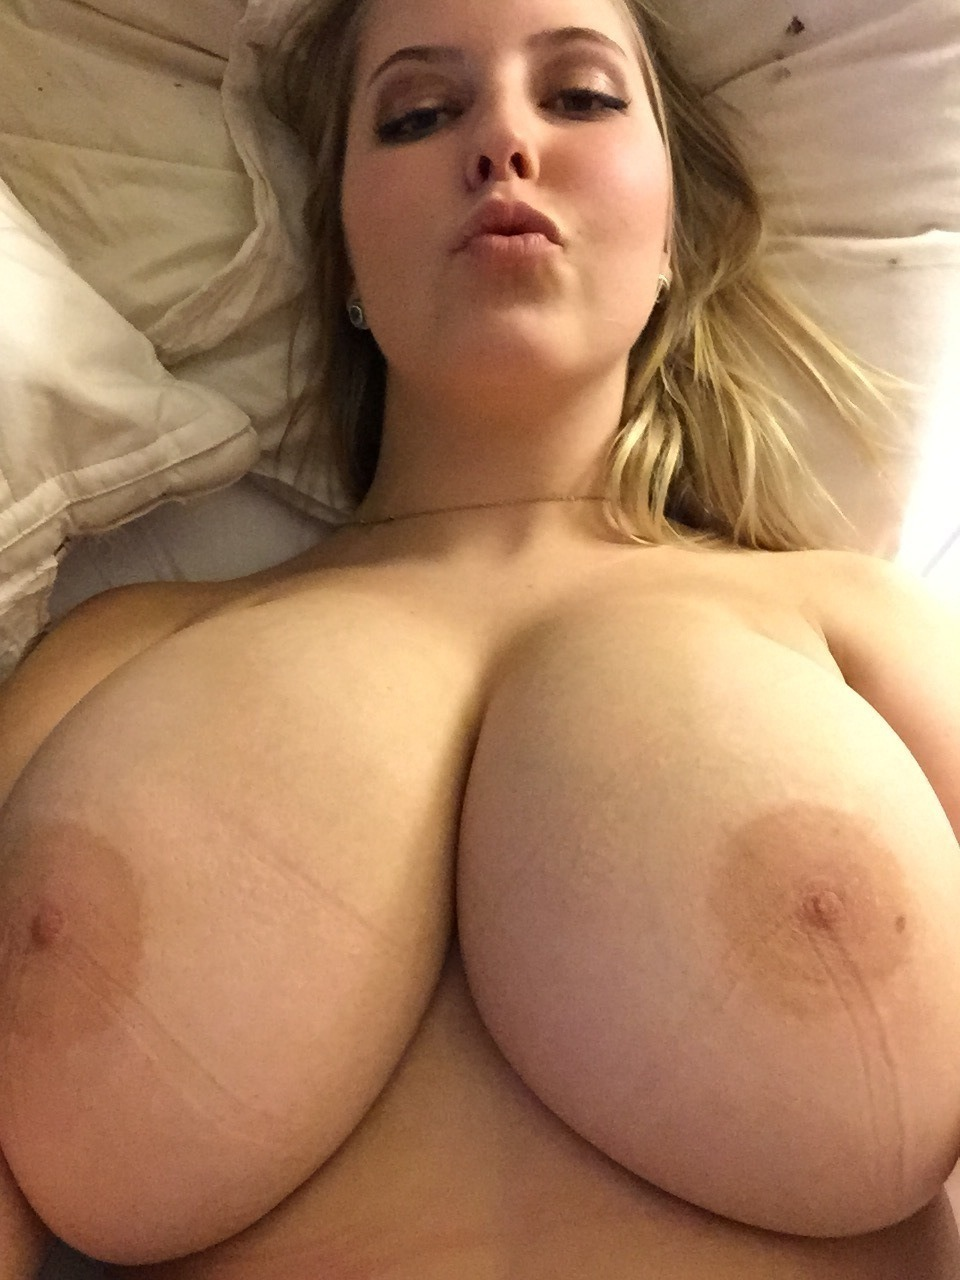 Wifes wanting sex with two men Blowjob